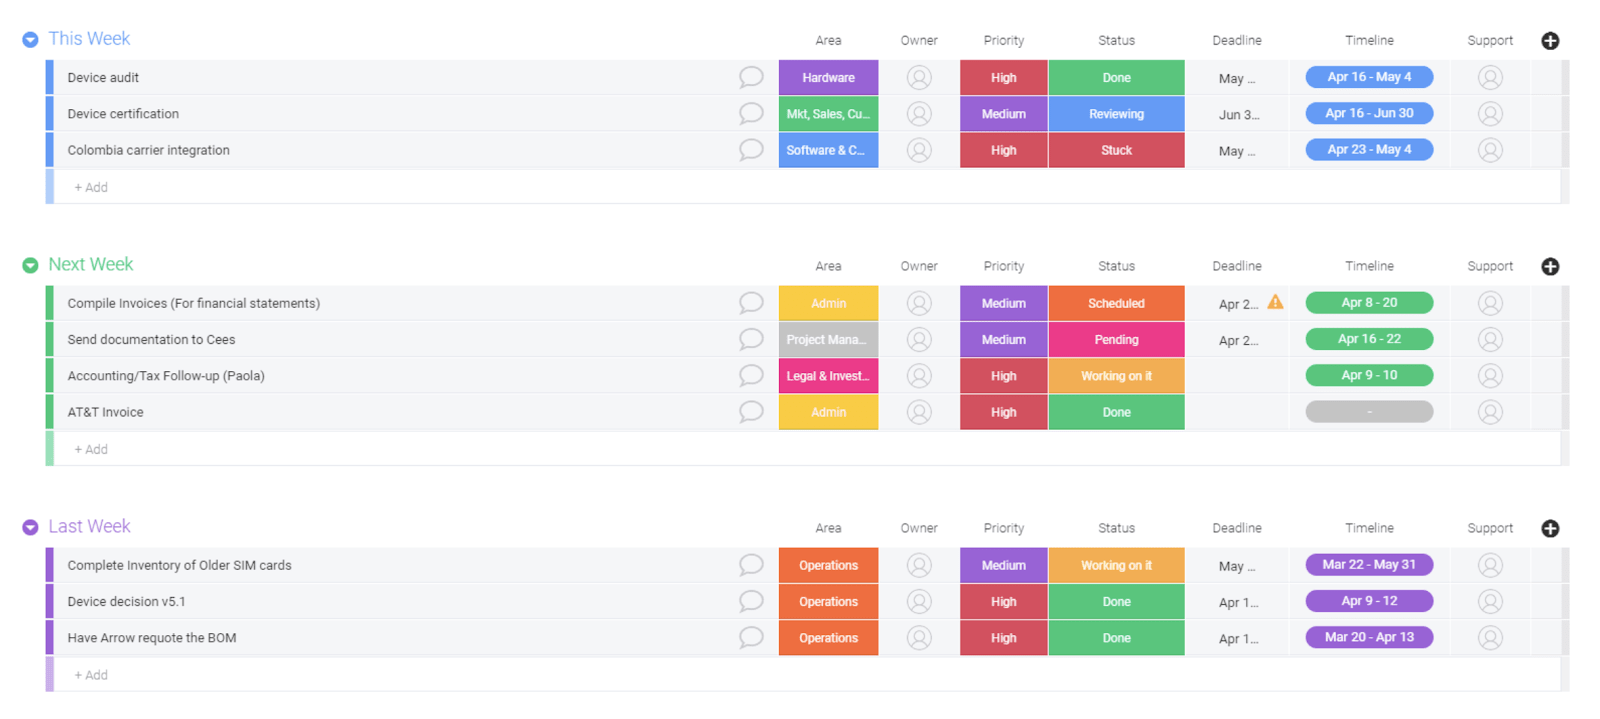 Social collaboration is easier with monday.com's team task tracker template